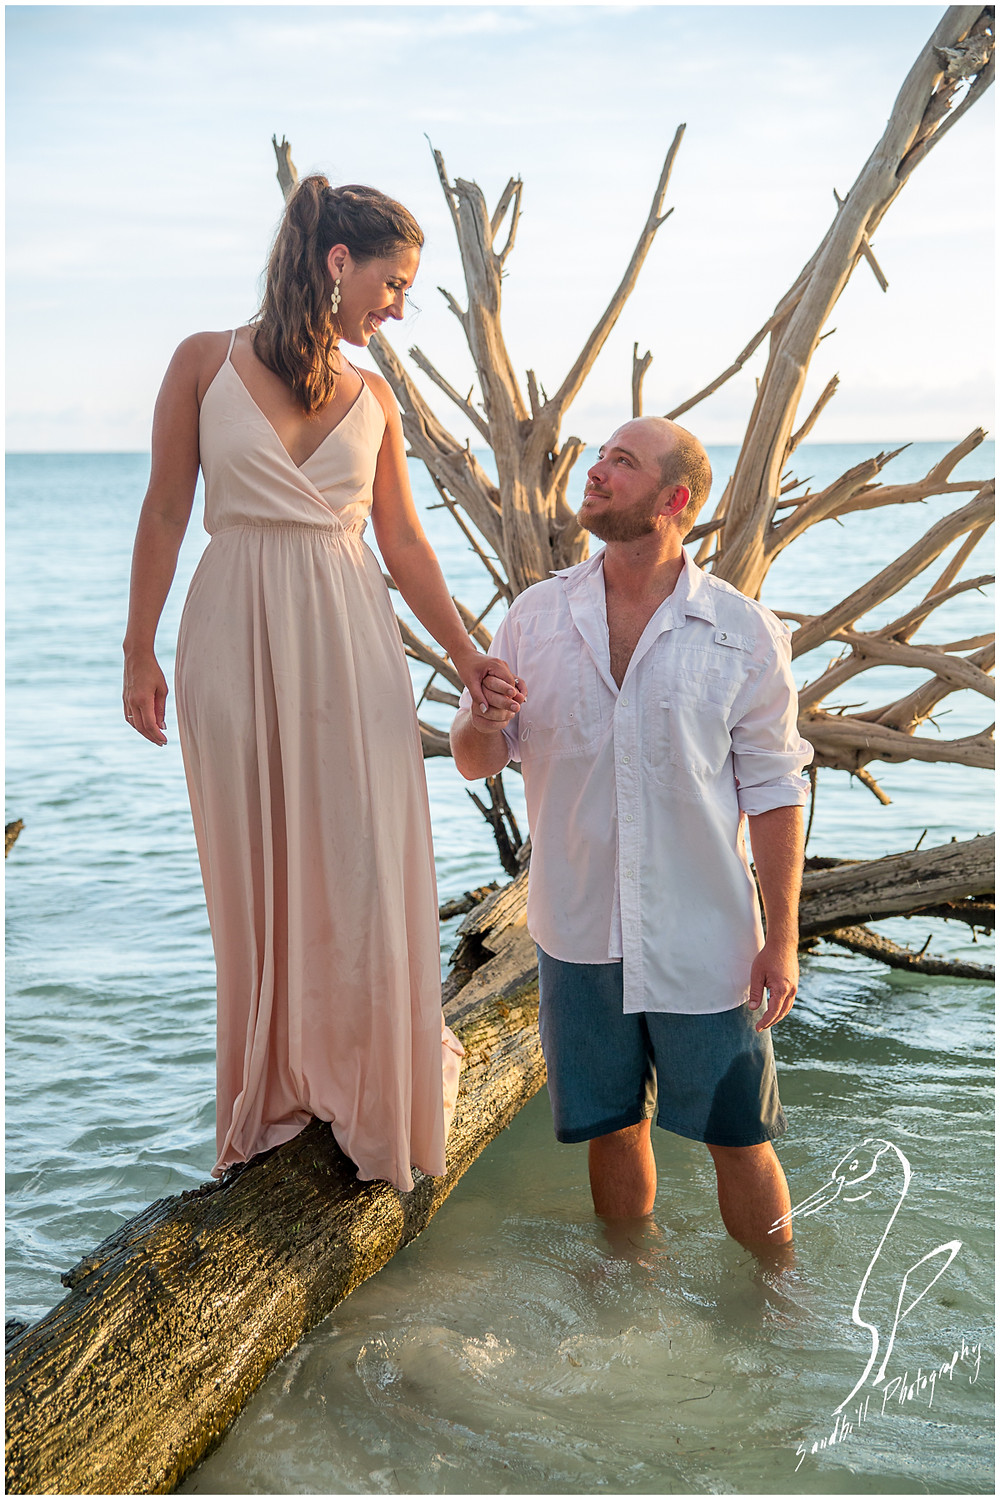 Beer Can Island Engagement Photography, Engaged man stands in the water and holds his fiance's hand as she walks on drift wood, Longboat Key